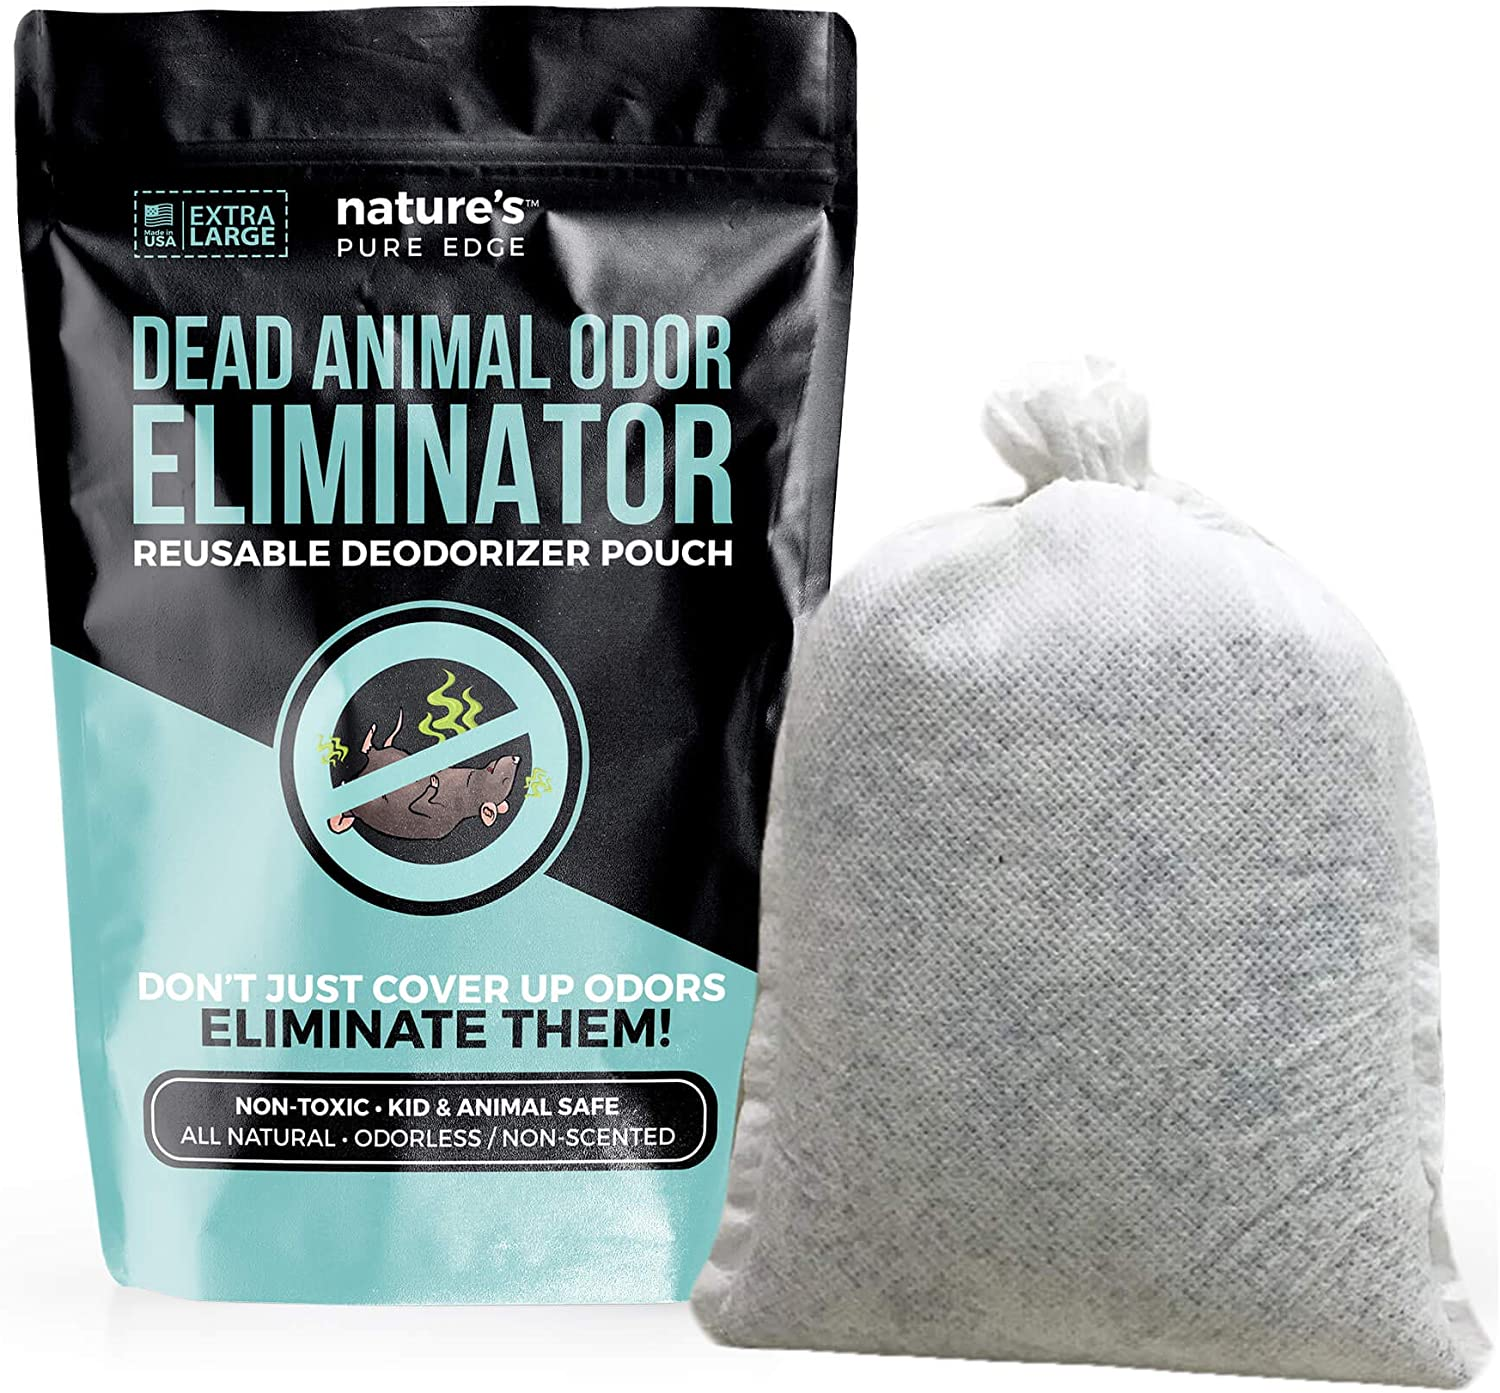 Dead Animal Smell Removal Reusable Deodorant Pouch. Eliminate dead Animal Smell Without Scent. Decay Odor Remover. Fragrance Free. Pet and Kid Safe. Extra Large, Covers 375 Square Feet.